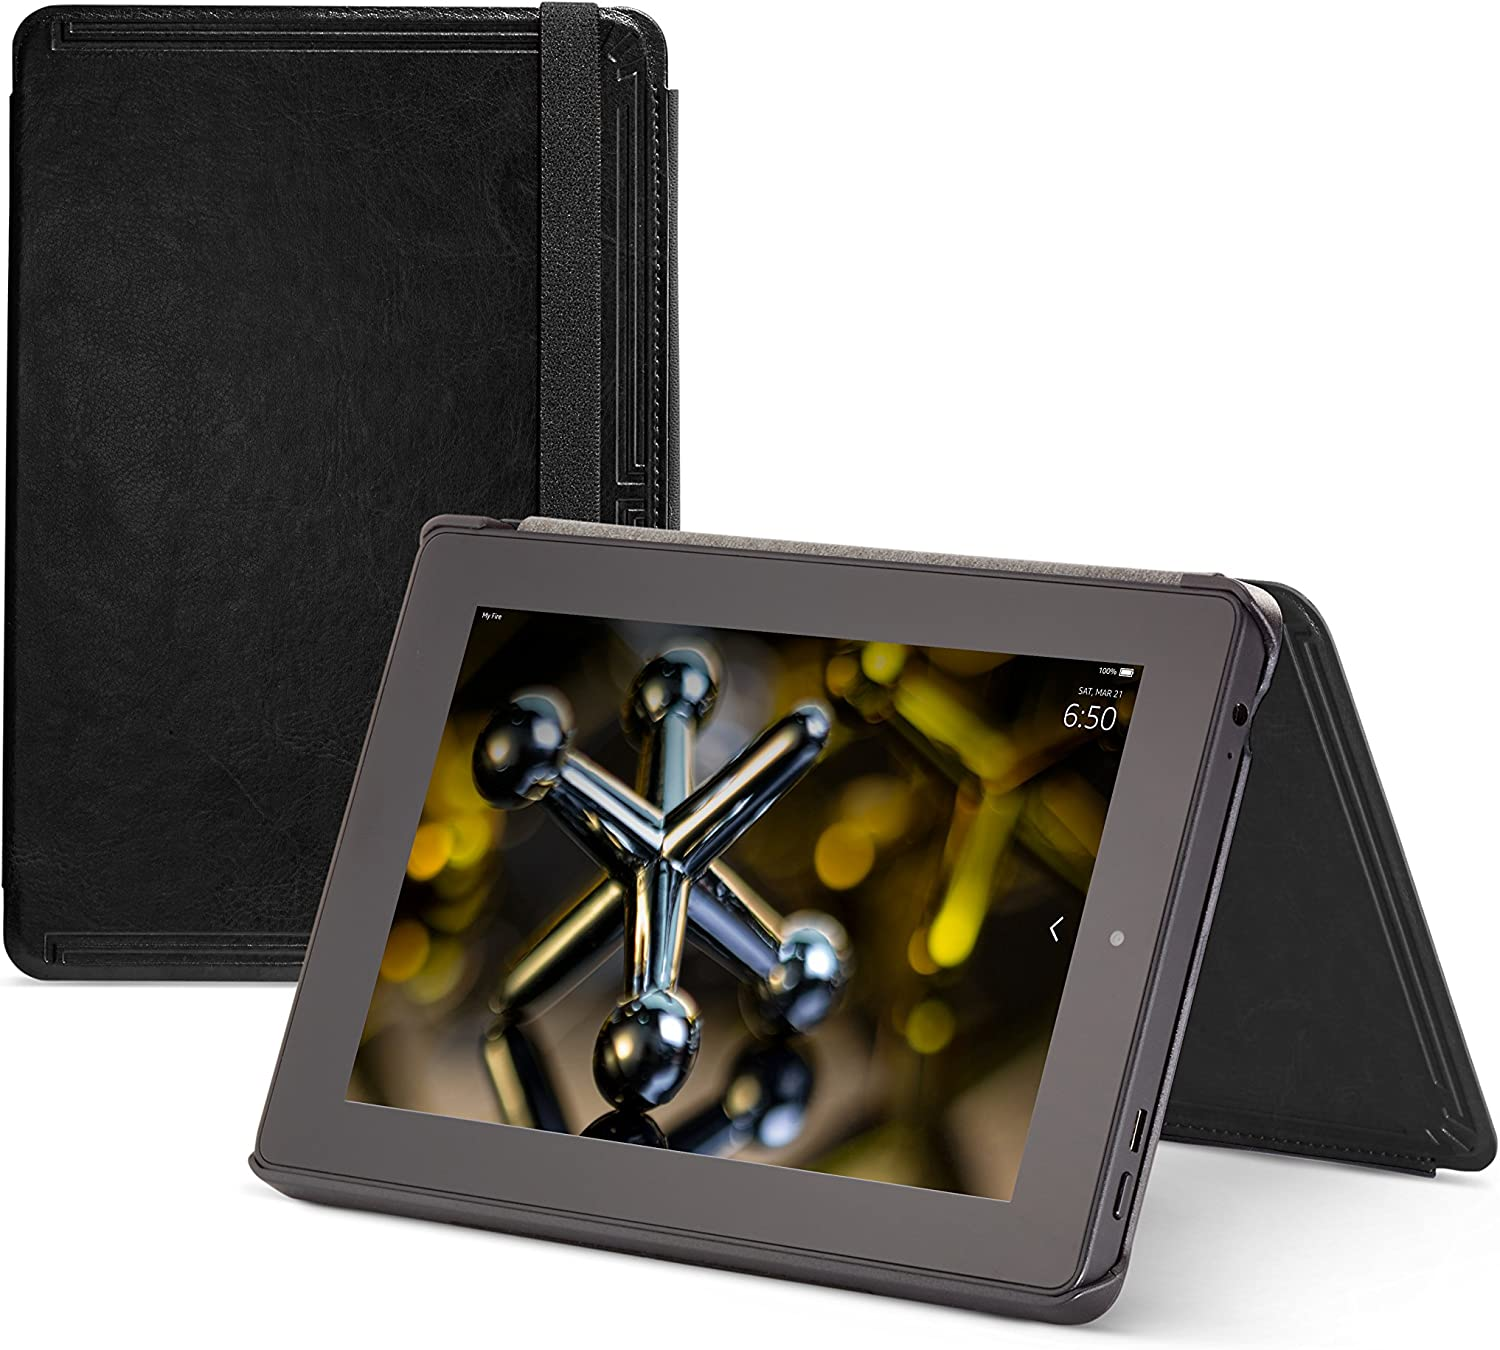 Amazon Com Marblue Case For Fire Hd 7 Only Fits 4th Generation Fire Hd 7 Black Kindle Store